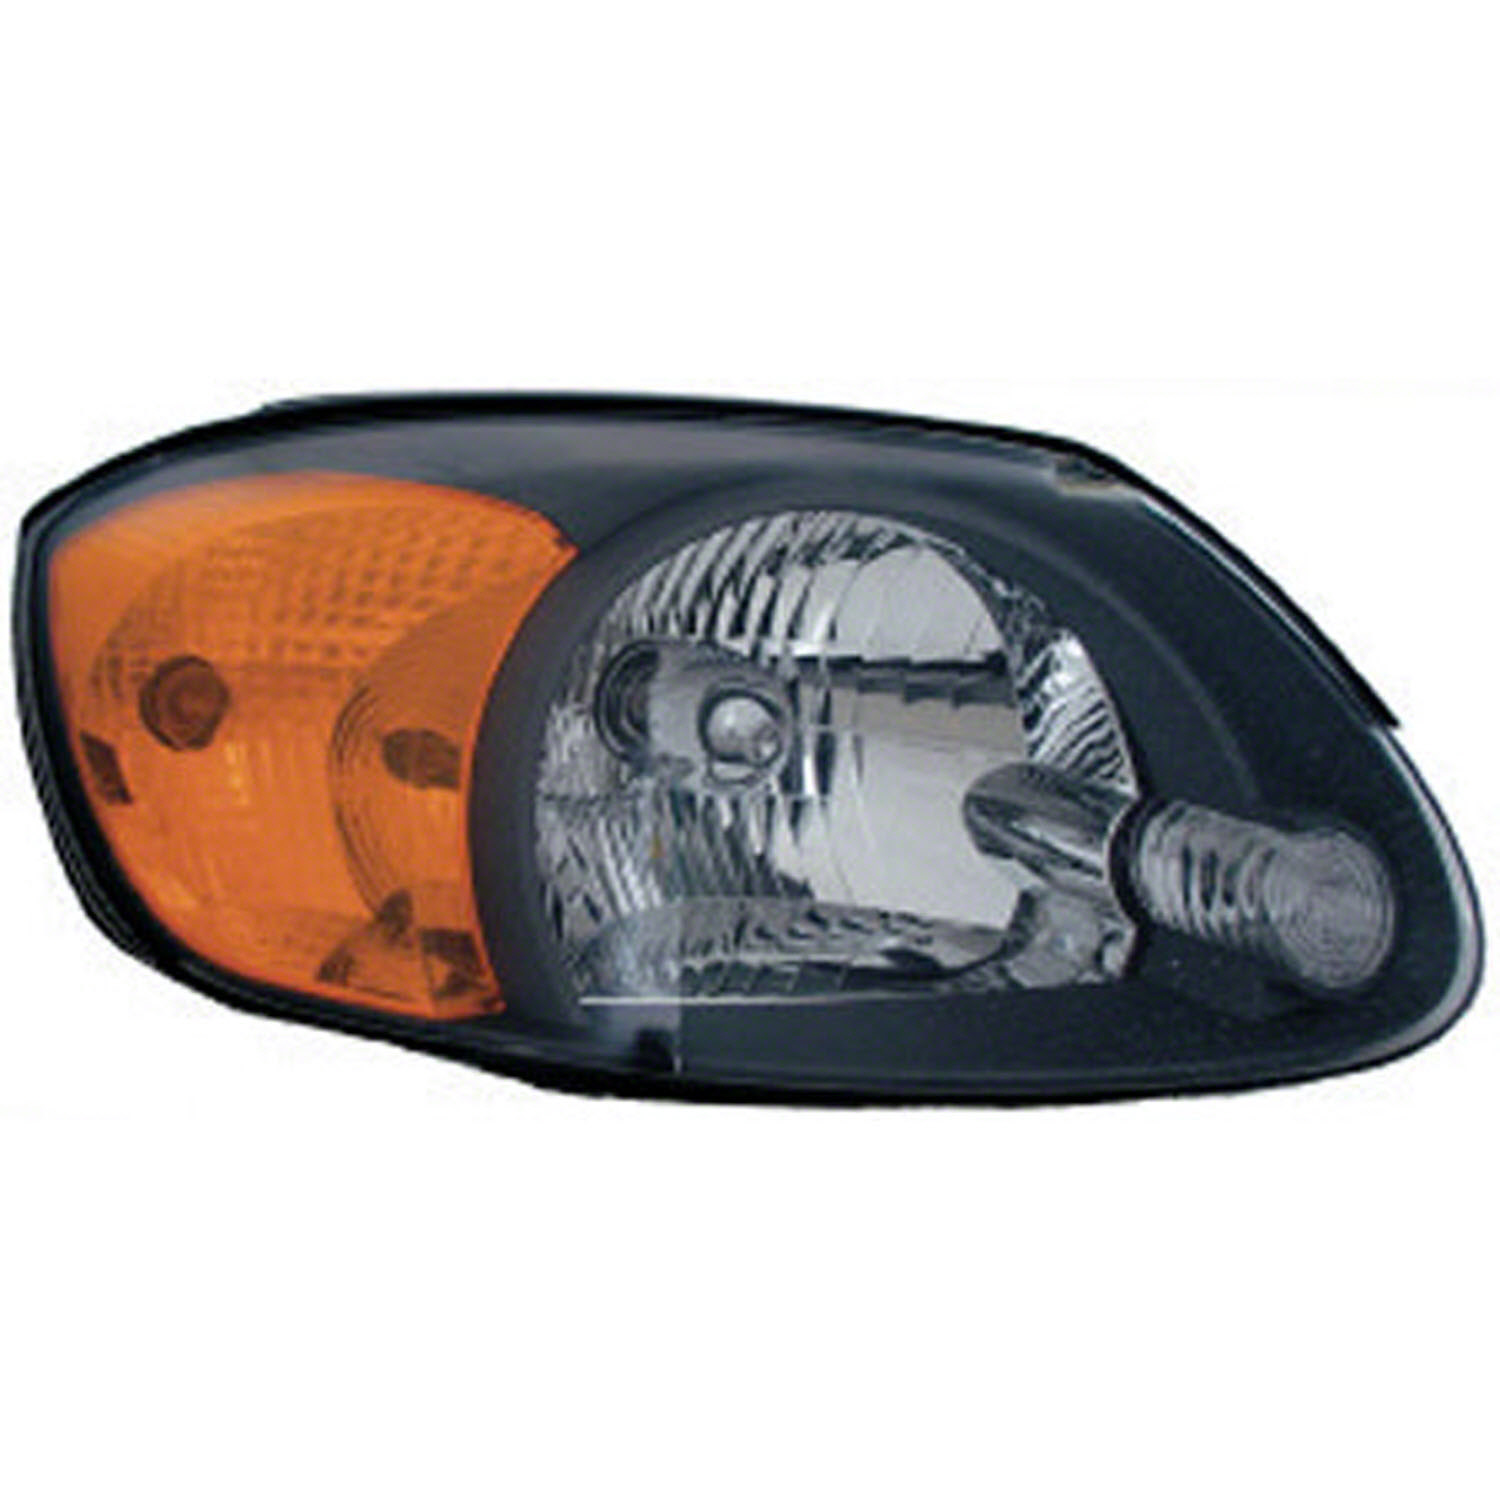 2003-2005 Hyundai Accent  Aftermarket Passenger Side Front Head Lamp Assembly 9210225550